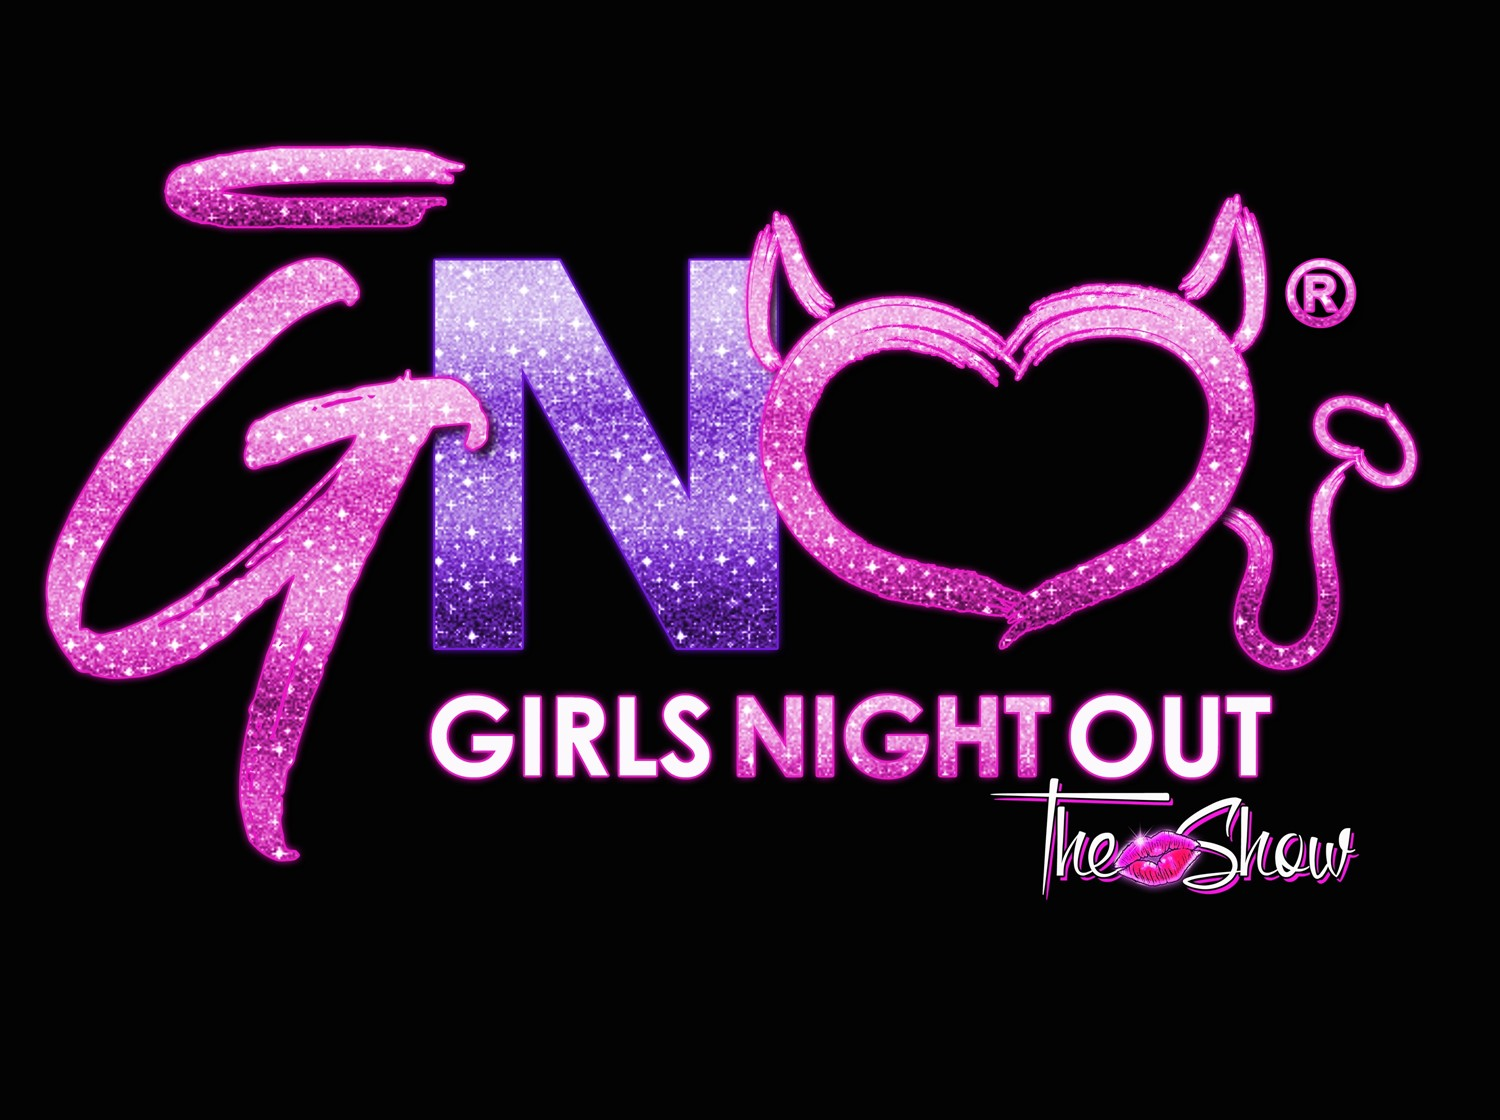 Ashley Street Station (21+) Valdosta, GA on Jun 10, 22:00@Ashley Street Station - Buy tickets and Get information on Girls Night Out the Show tickets.girlsnightouttheshow.com